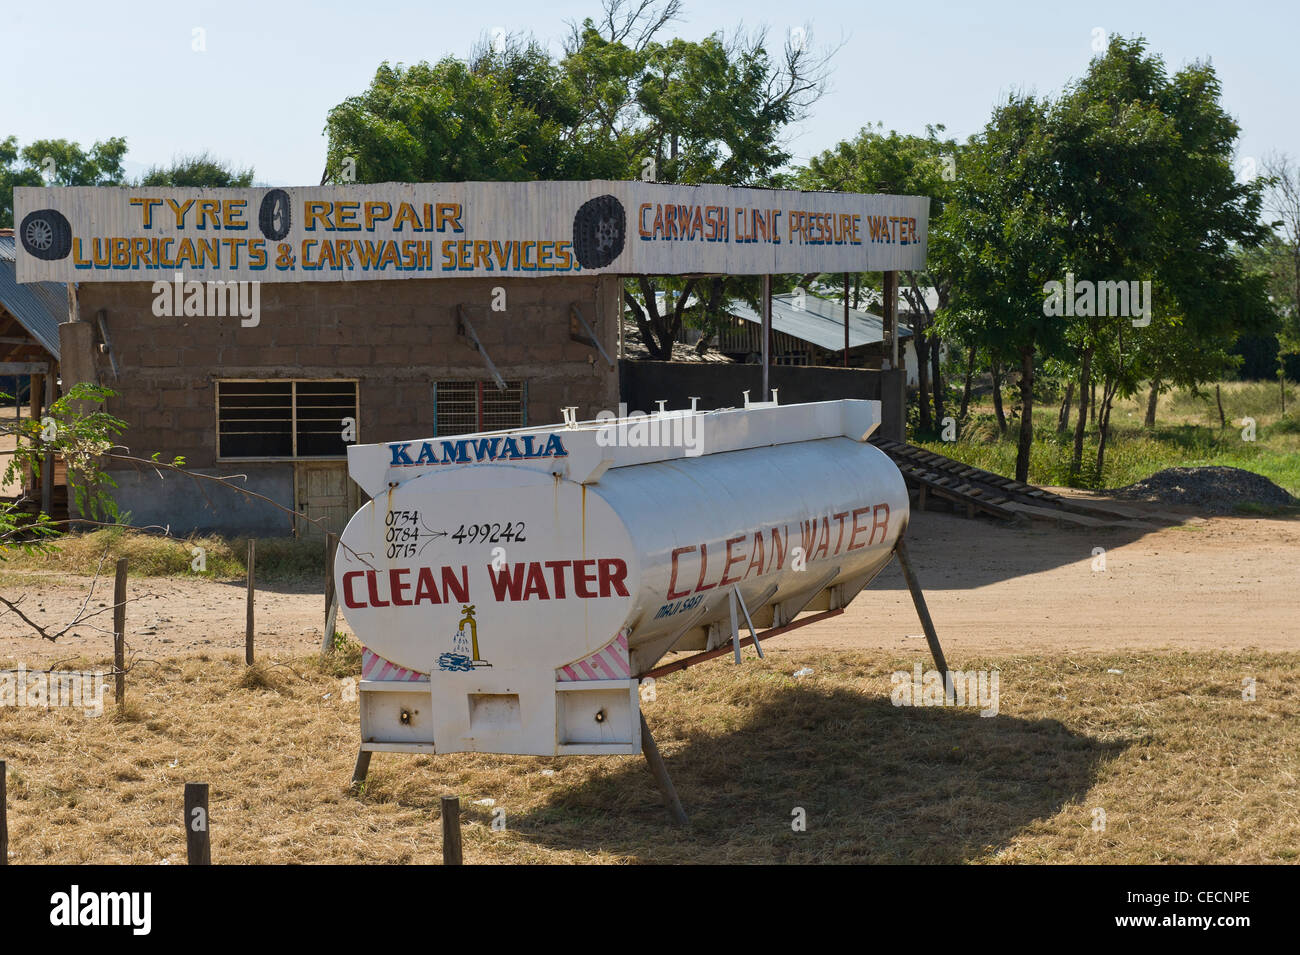 Old fuel tanker used to advertise the delivery of clean drinking water in Korogwe Tanzania Stock Photo